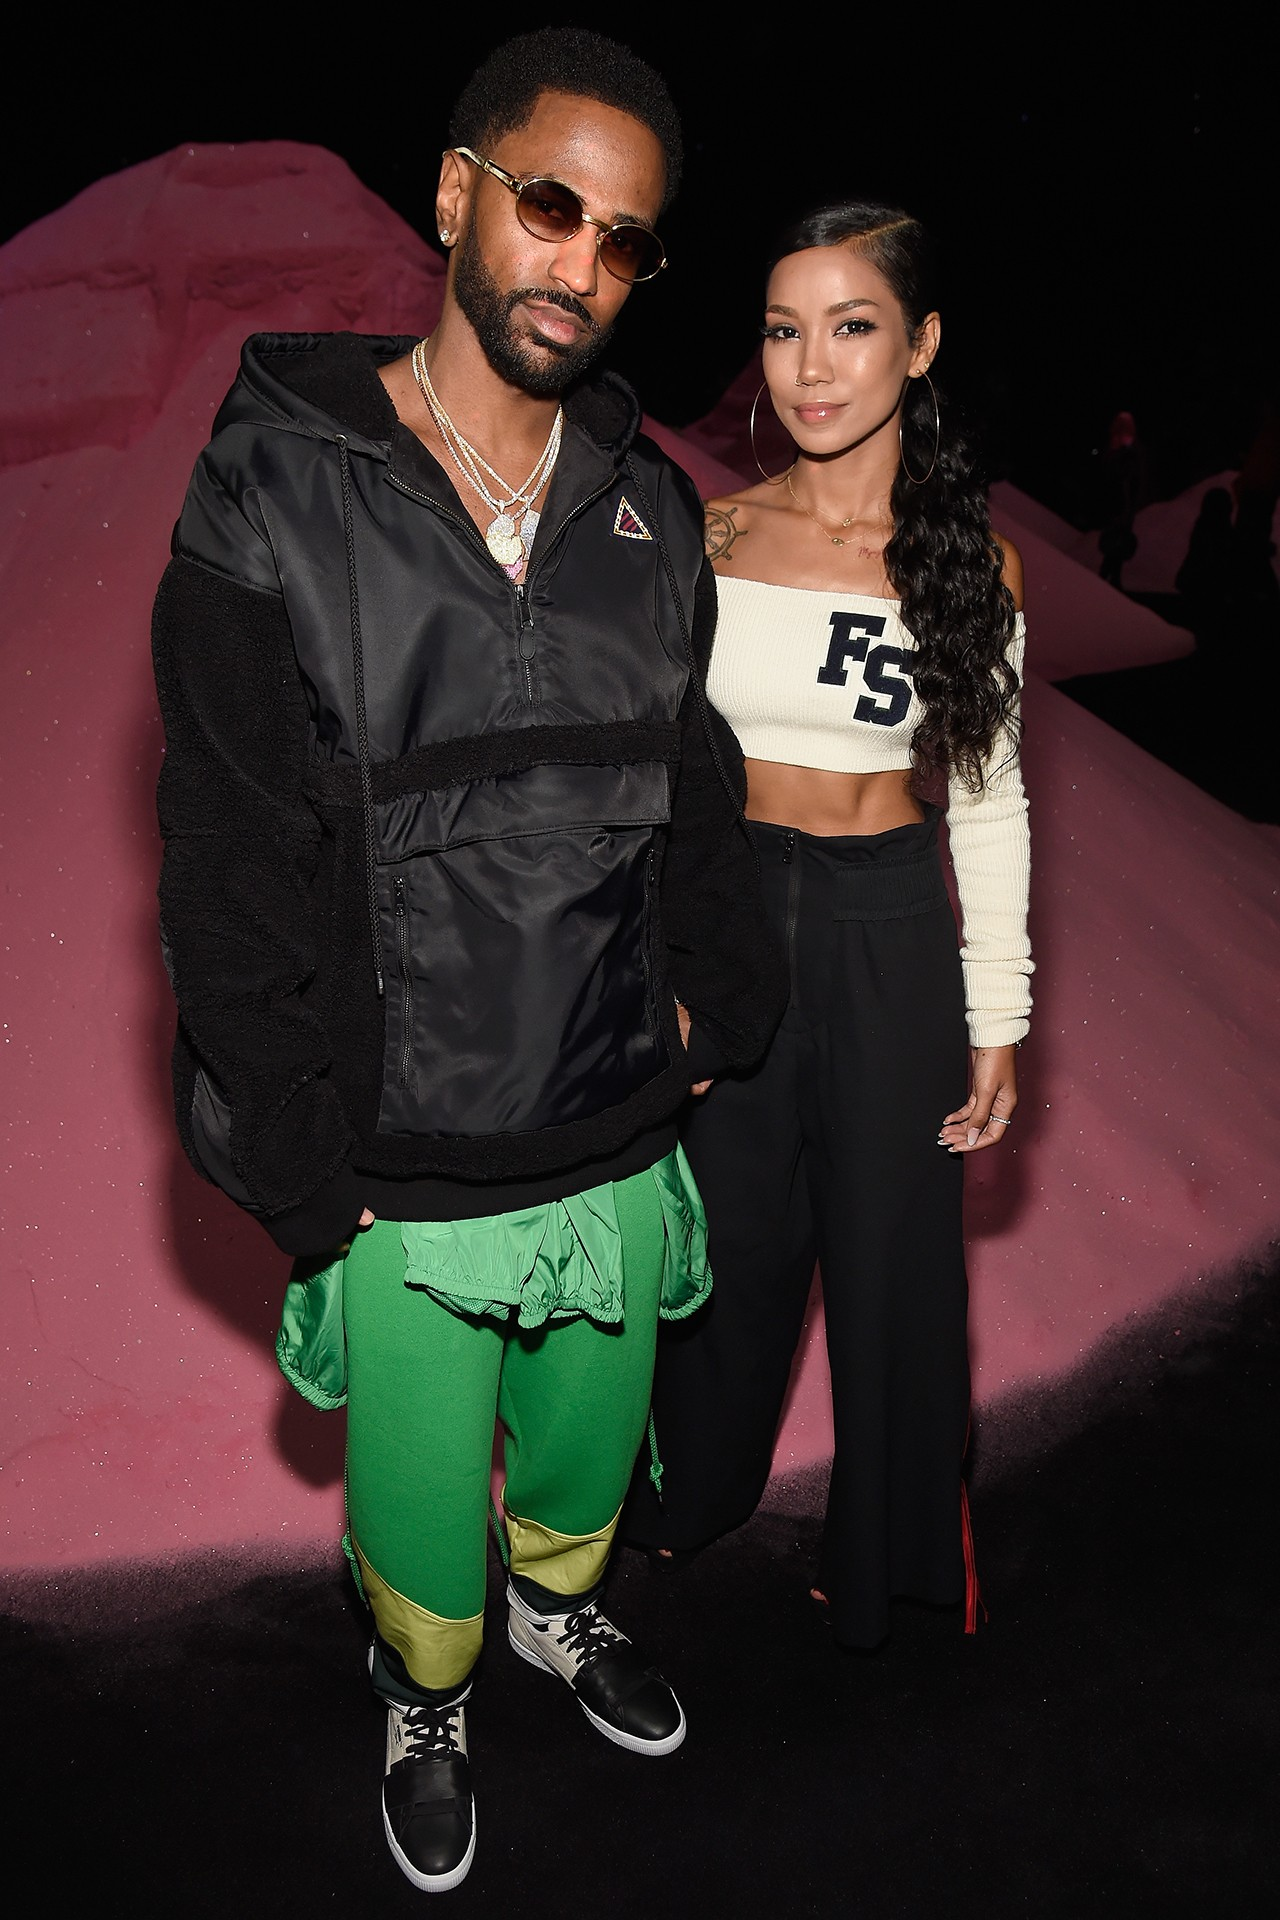 Jhené Aiko Big Sean Singer Rapper Best Celebrity Couple Outfits Style Looks Dior Spring Summer 2018 Runway Show Paris Fashion Week Haute Couture Dress Jacket Coat